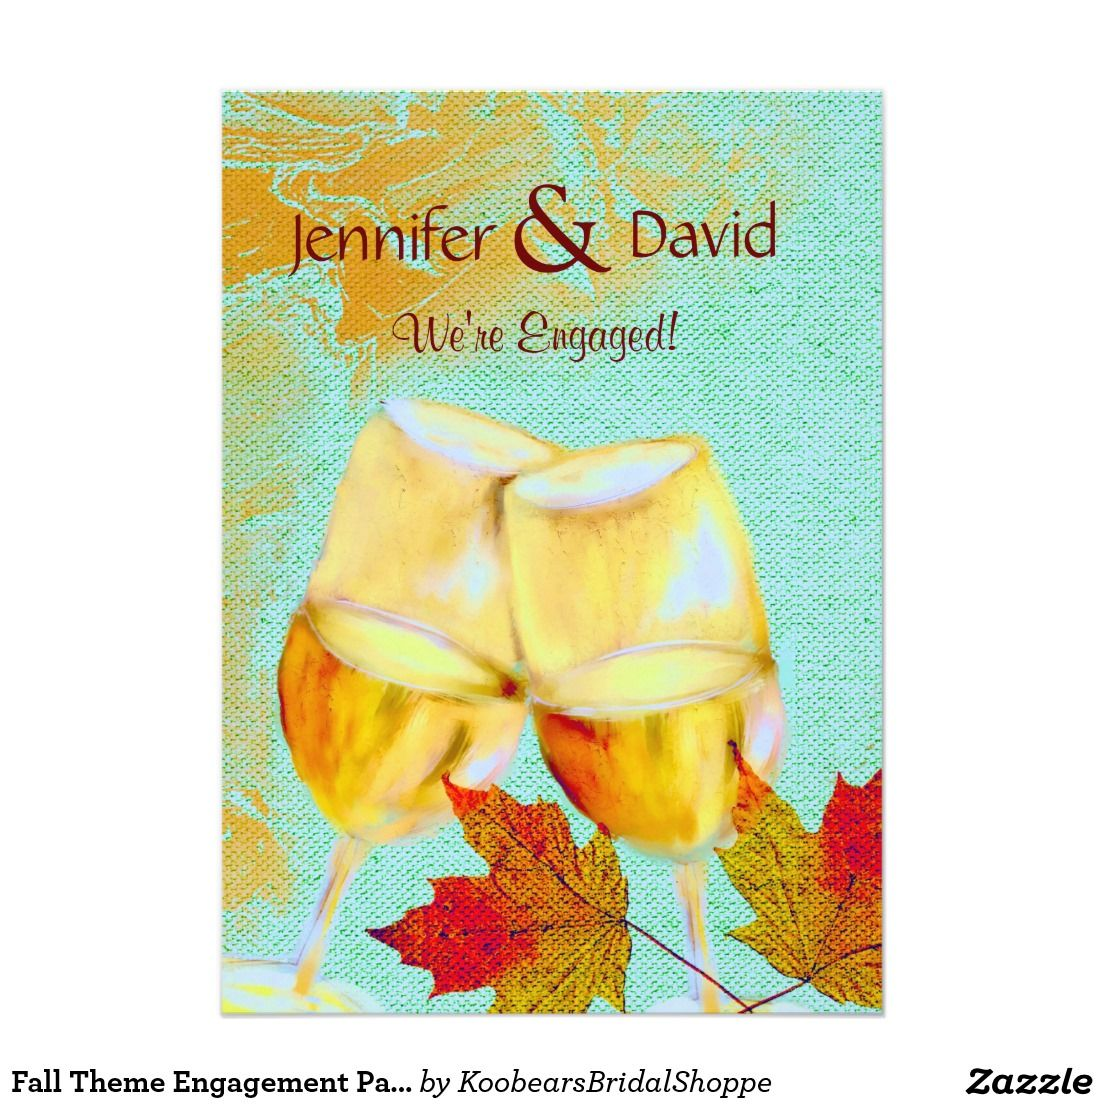 Fall Theme Engagement Party Invitation